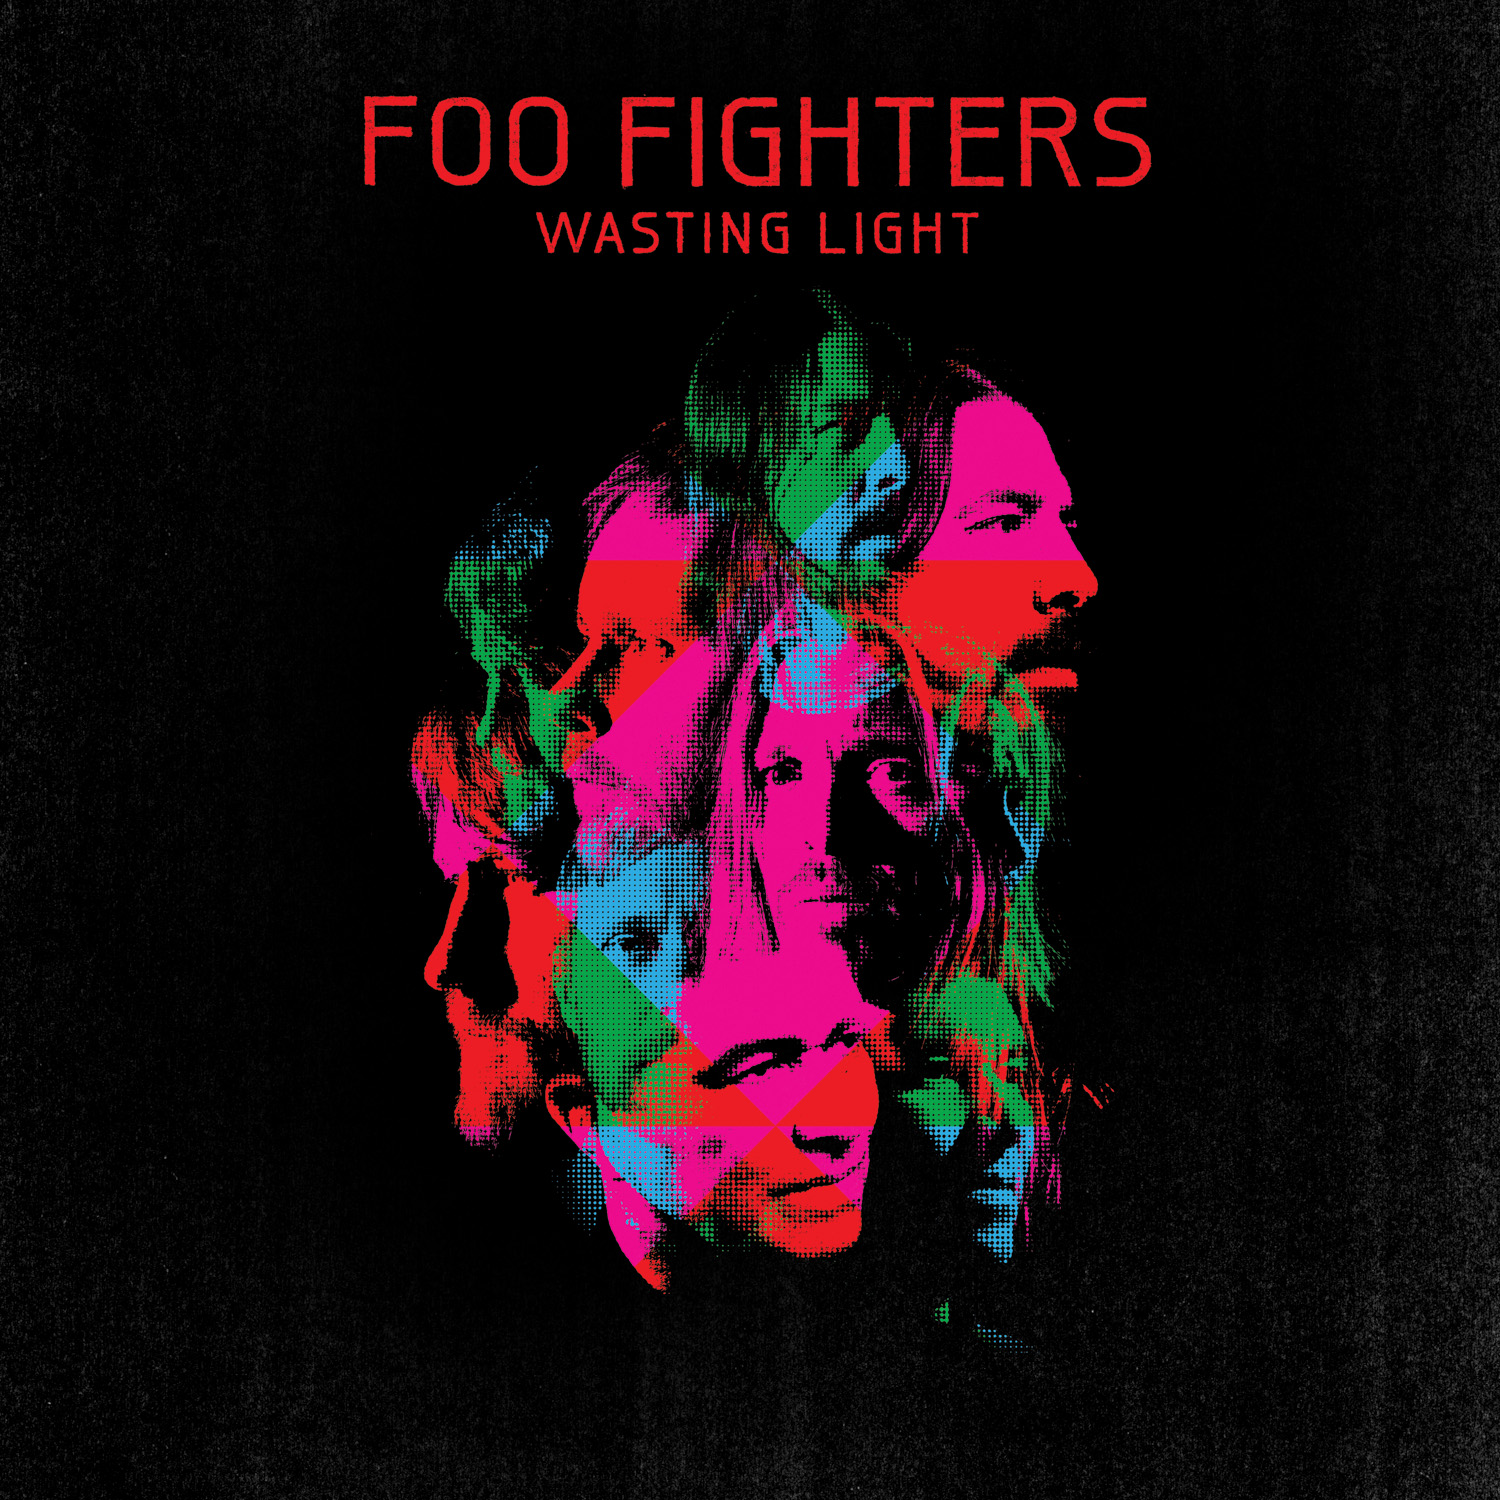 http://3.bp.blogspot.com/-TjypGEE7sS0/TYzmobrjhVI/AAAAAAAACn4/JS2esLoklvo/s1600/Foo_Fighters_Wasting_Light_Album_Cover.jpg